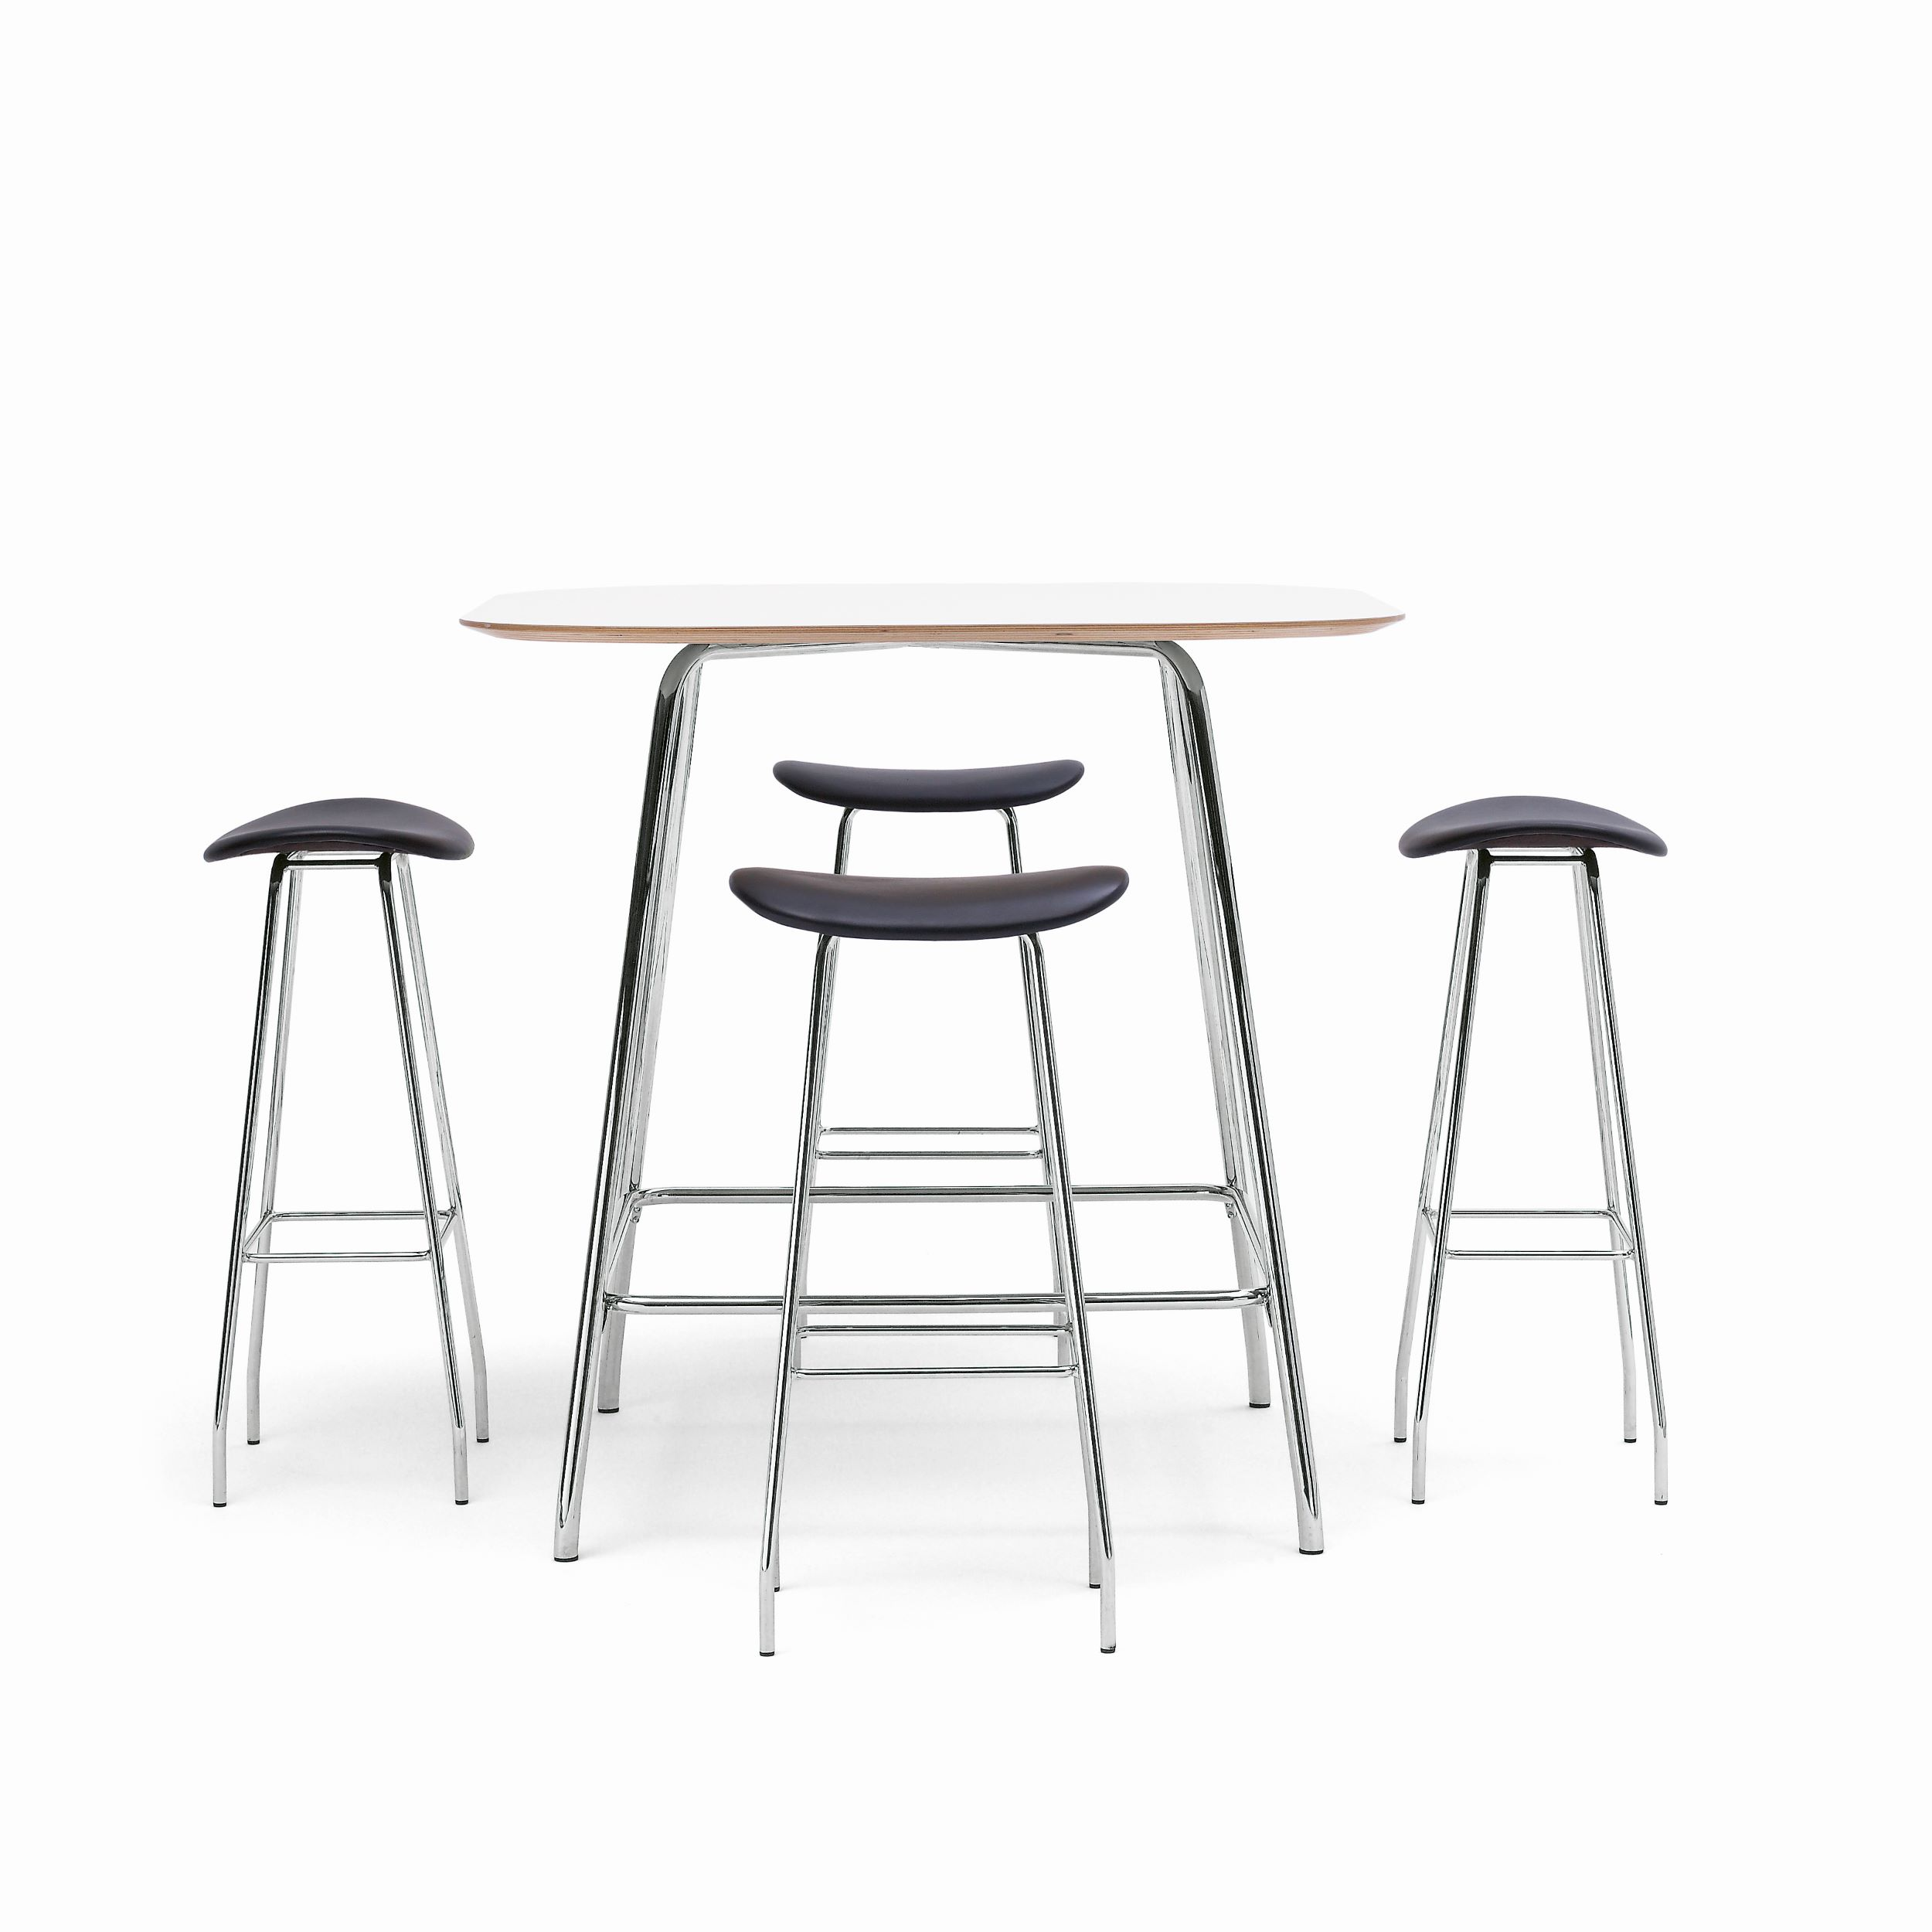 chairs white cafe caf and stools products to comfortably seat benches stool sit scooped en the you thanks janinge bar gb ikea seating tables